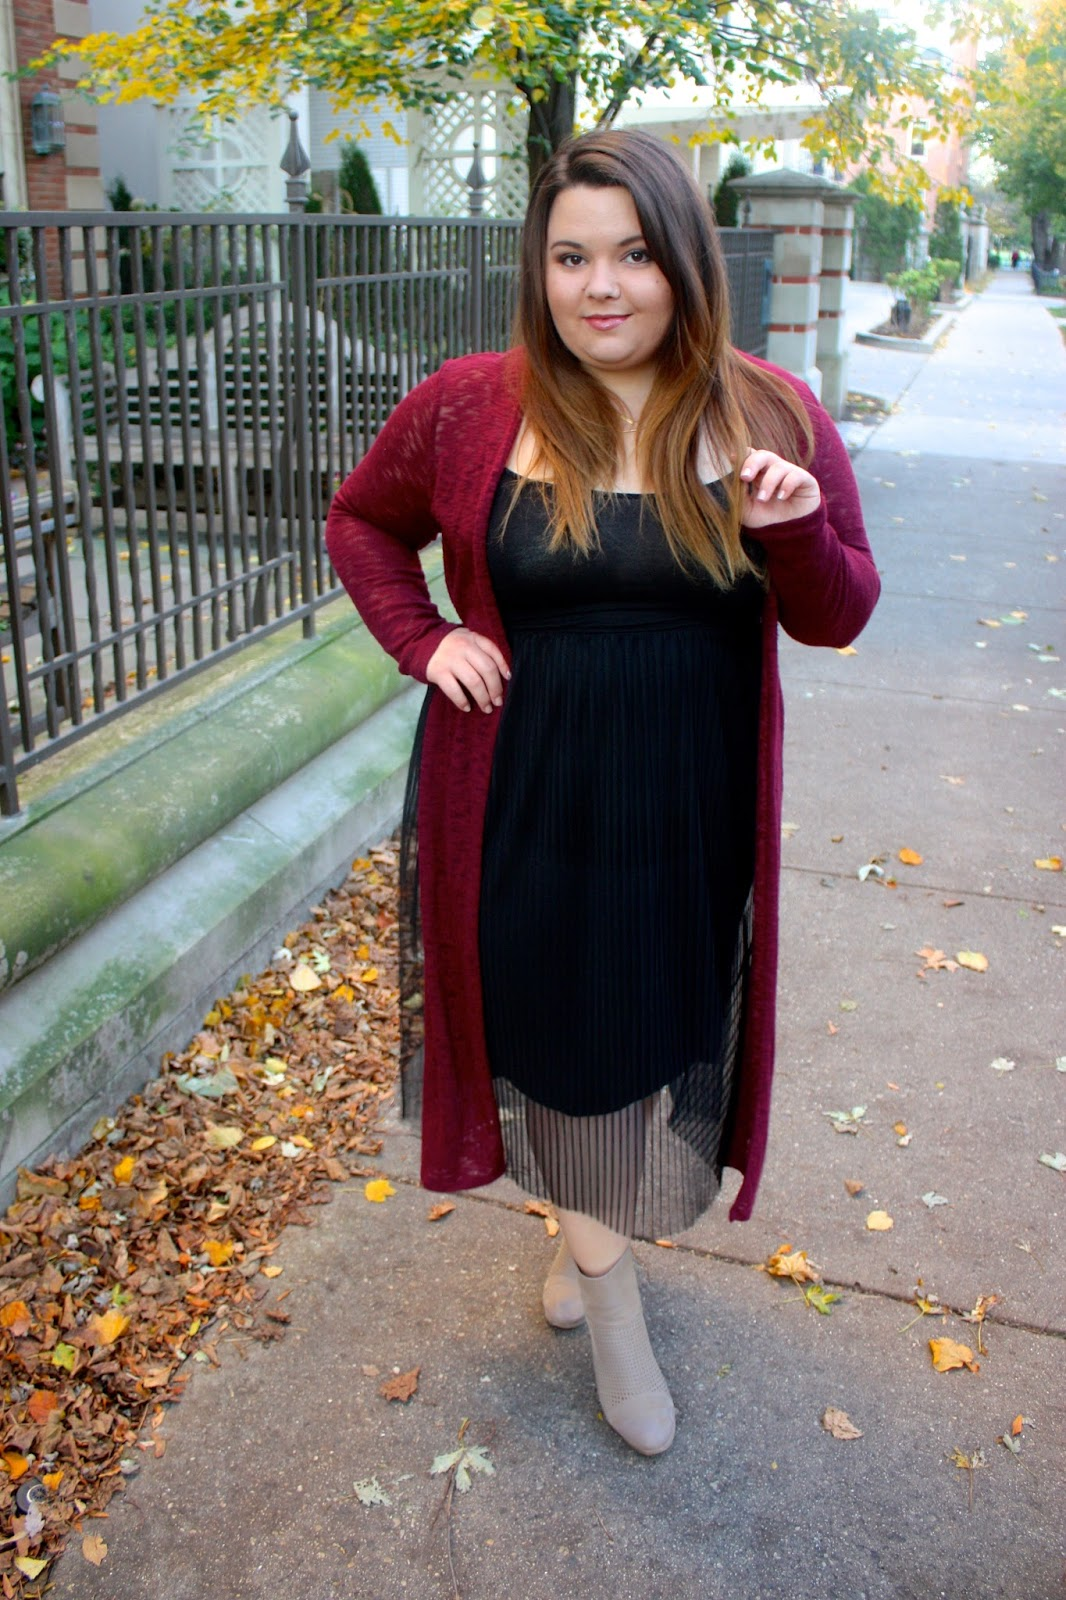 Natalie Craig, Natalie in the city, chicago, fashion blogger, plus size fashion blogger, plus size, ootd, duster cardigan, maxi cardigan, pleated tulle, tulle skirt on plus size women, full figured, see through dress, burgundy, fall fashion, chicago blogger, ankle boots for plus size, what to wear with a duster cardigan, Love EmilyD, chicago doordinate necklace